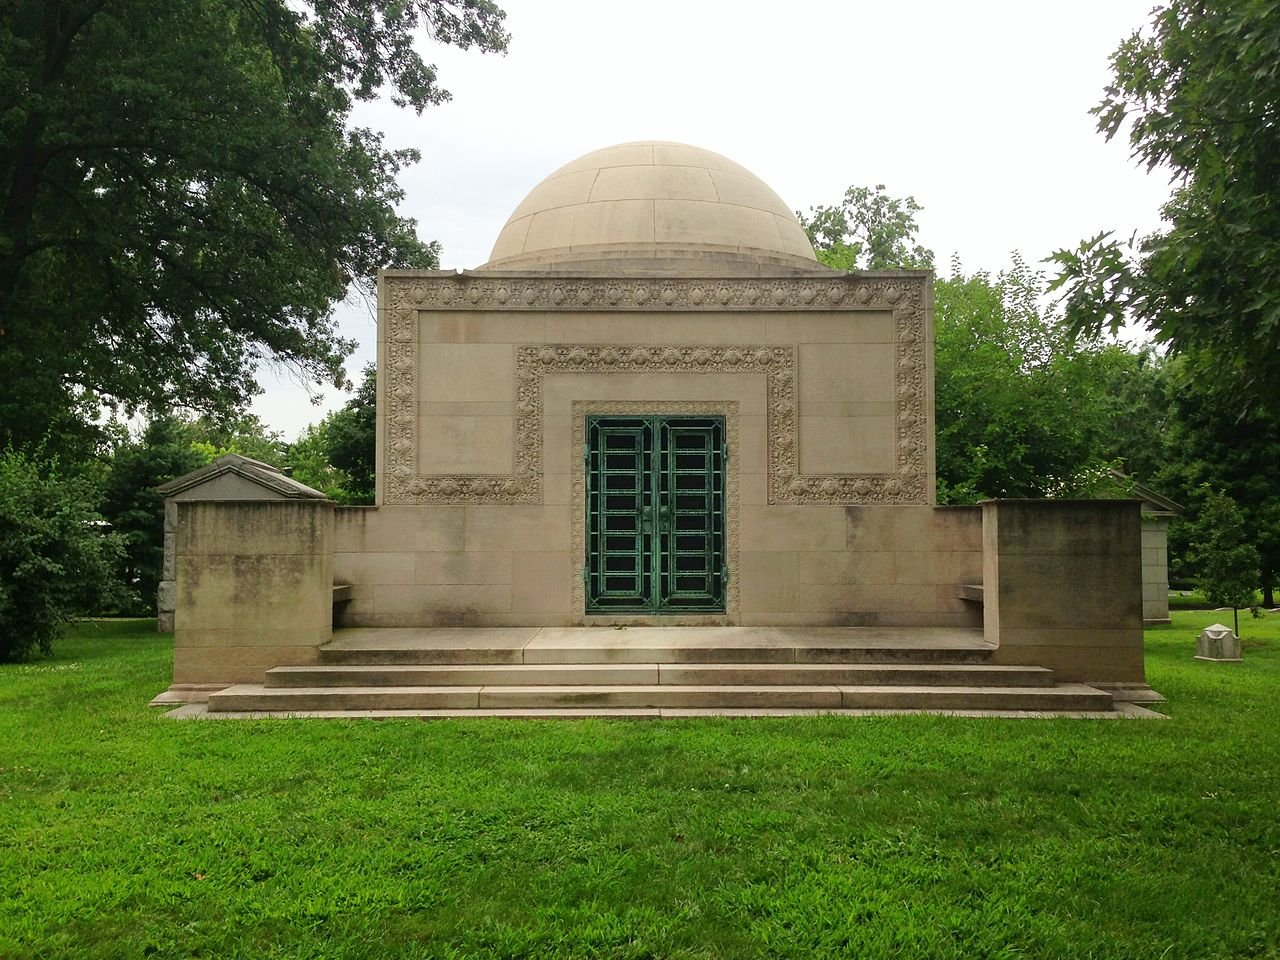 The Wainright Tomb is listed on the National Register of Historic Places for its architecture. It was designed by Louis Sullivan, who also designed the Wainright Building in the downtown area.